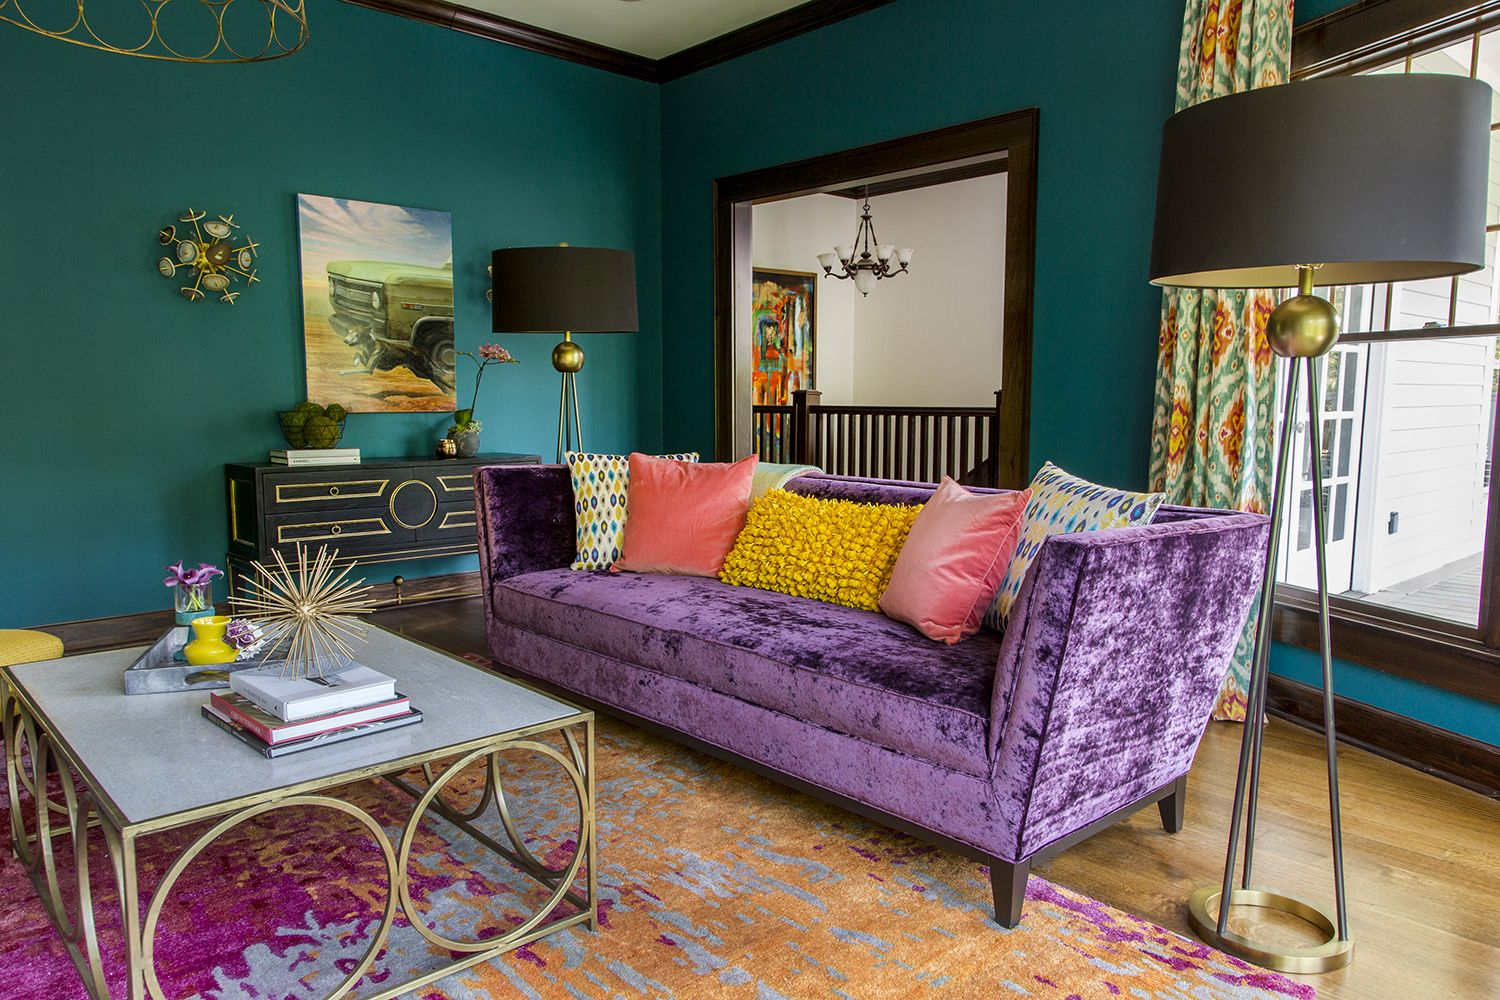 Analogous Color Scheme With Blue On Walls And Purple As Secondary